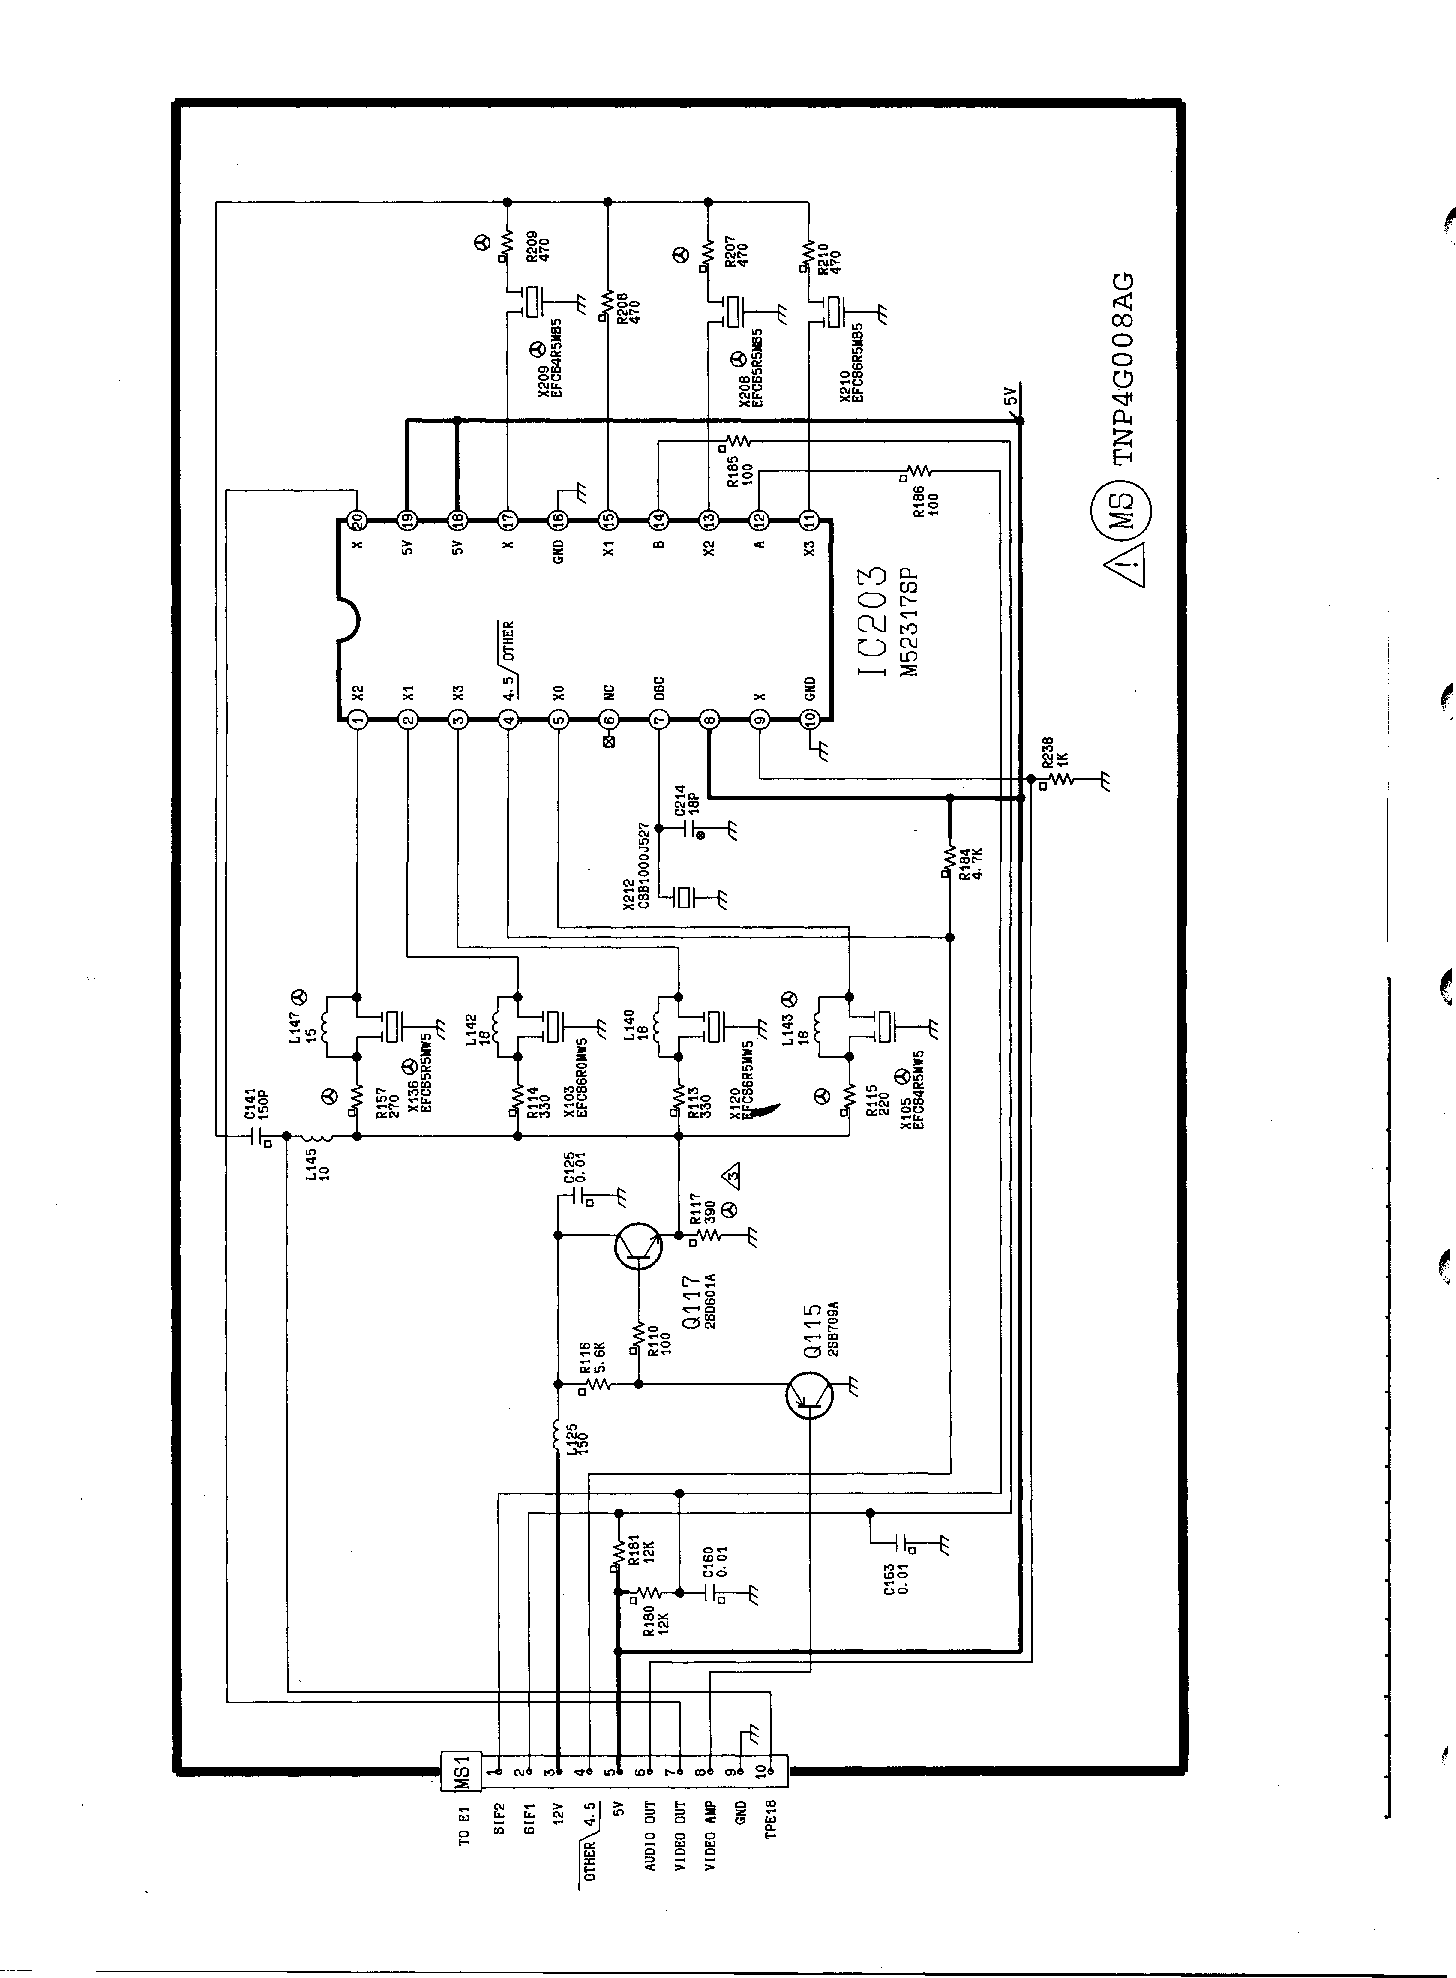 PANASONIC TX-21FT1 Service Manual download, schematics